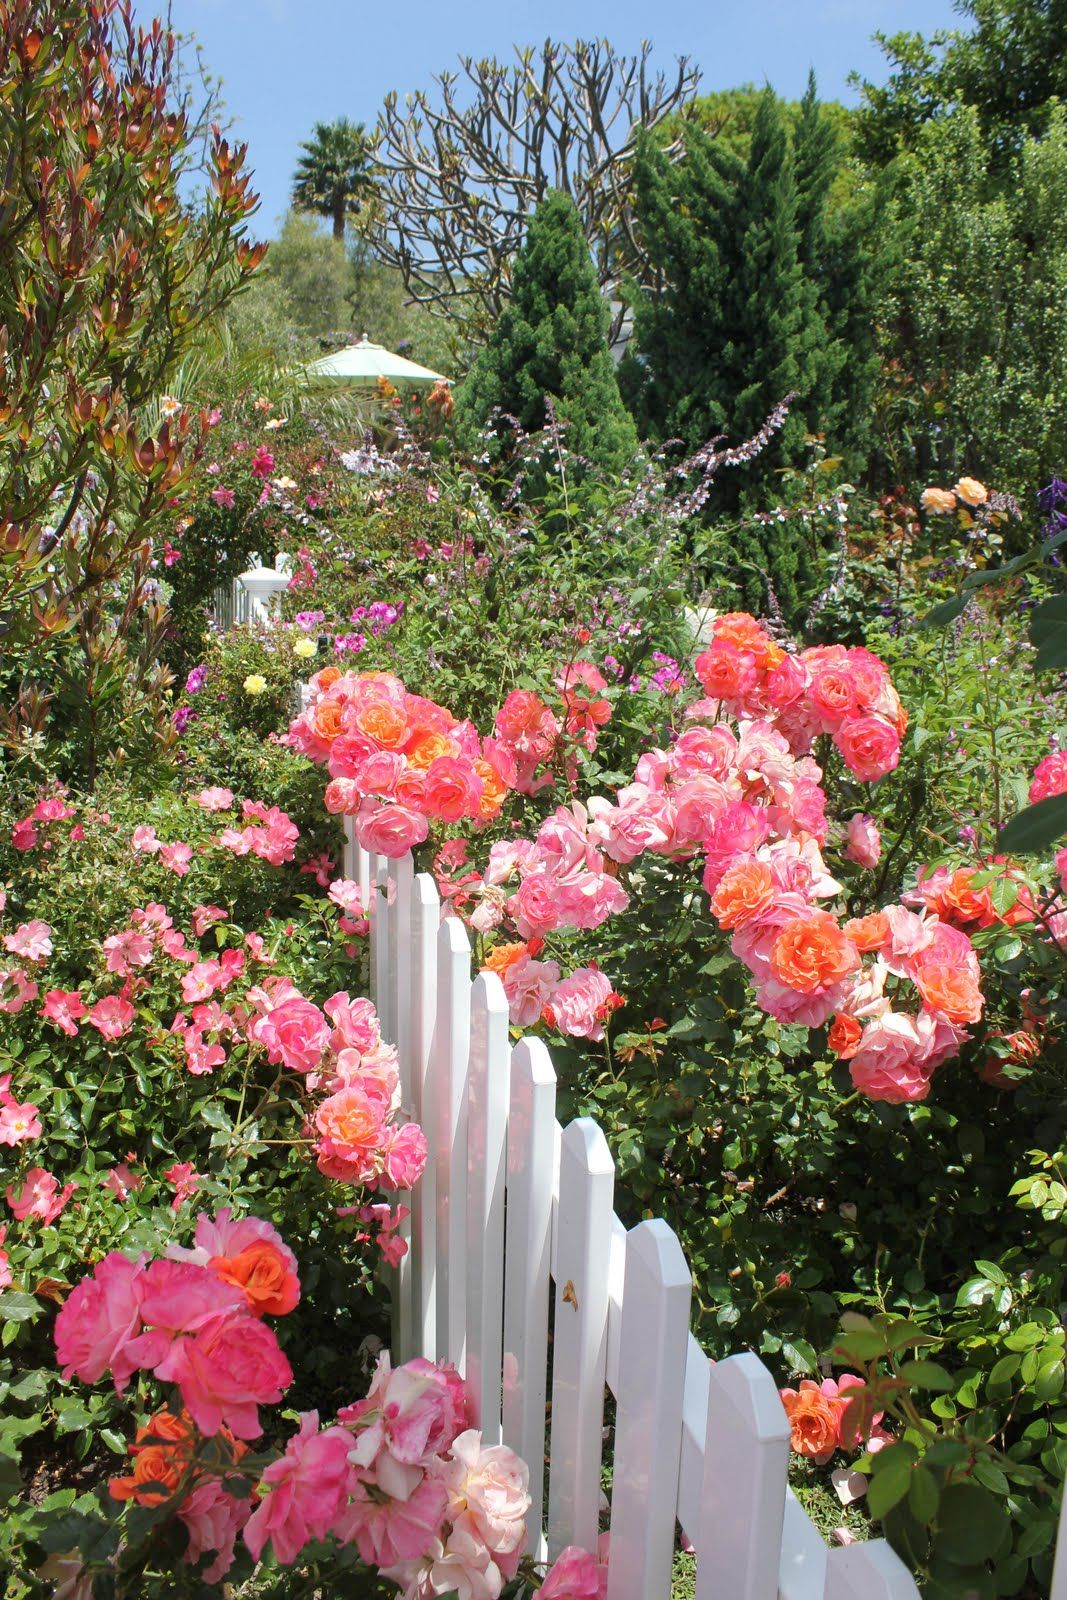 pink roses beside a white picket fence